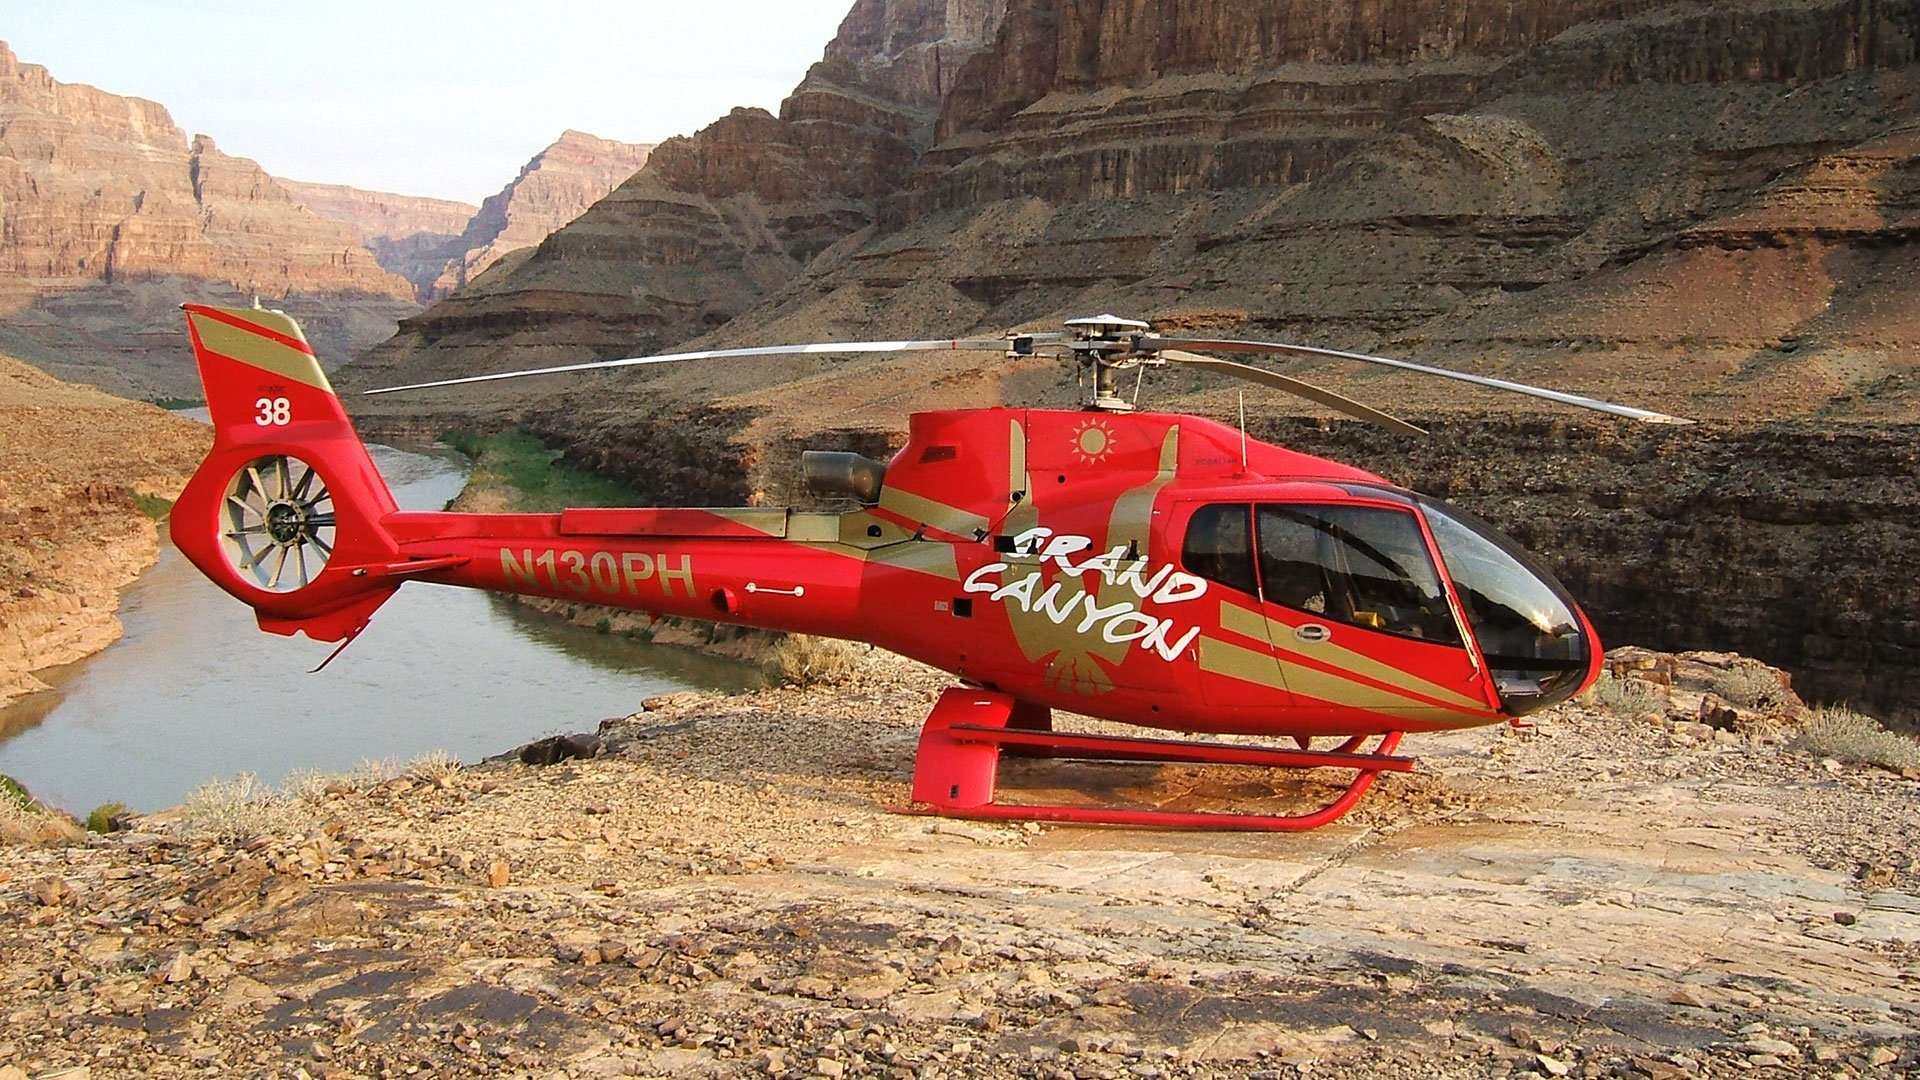 An EC-130 helicopter landed at the bottom of the Grand Canyon with the Colorado River in the background.